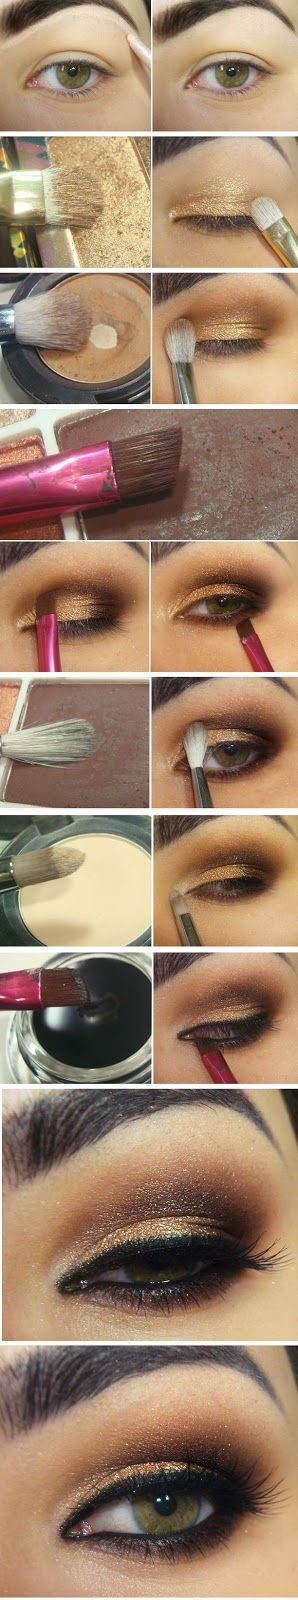 Gold and Brown Inspired Makeup Tutorials - Step by Step / Best LoLus Makeup Fashion